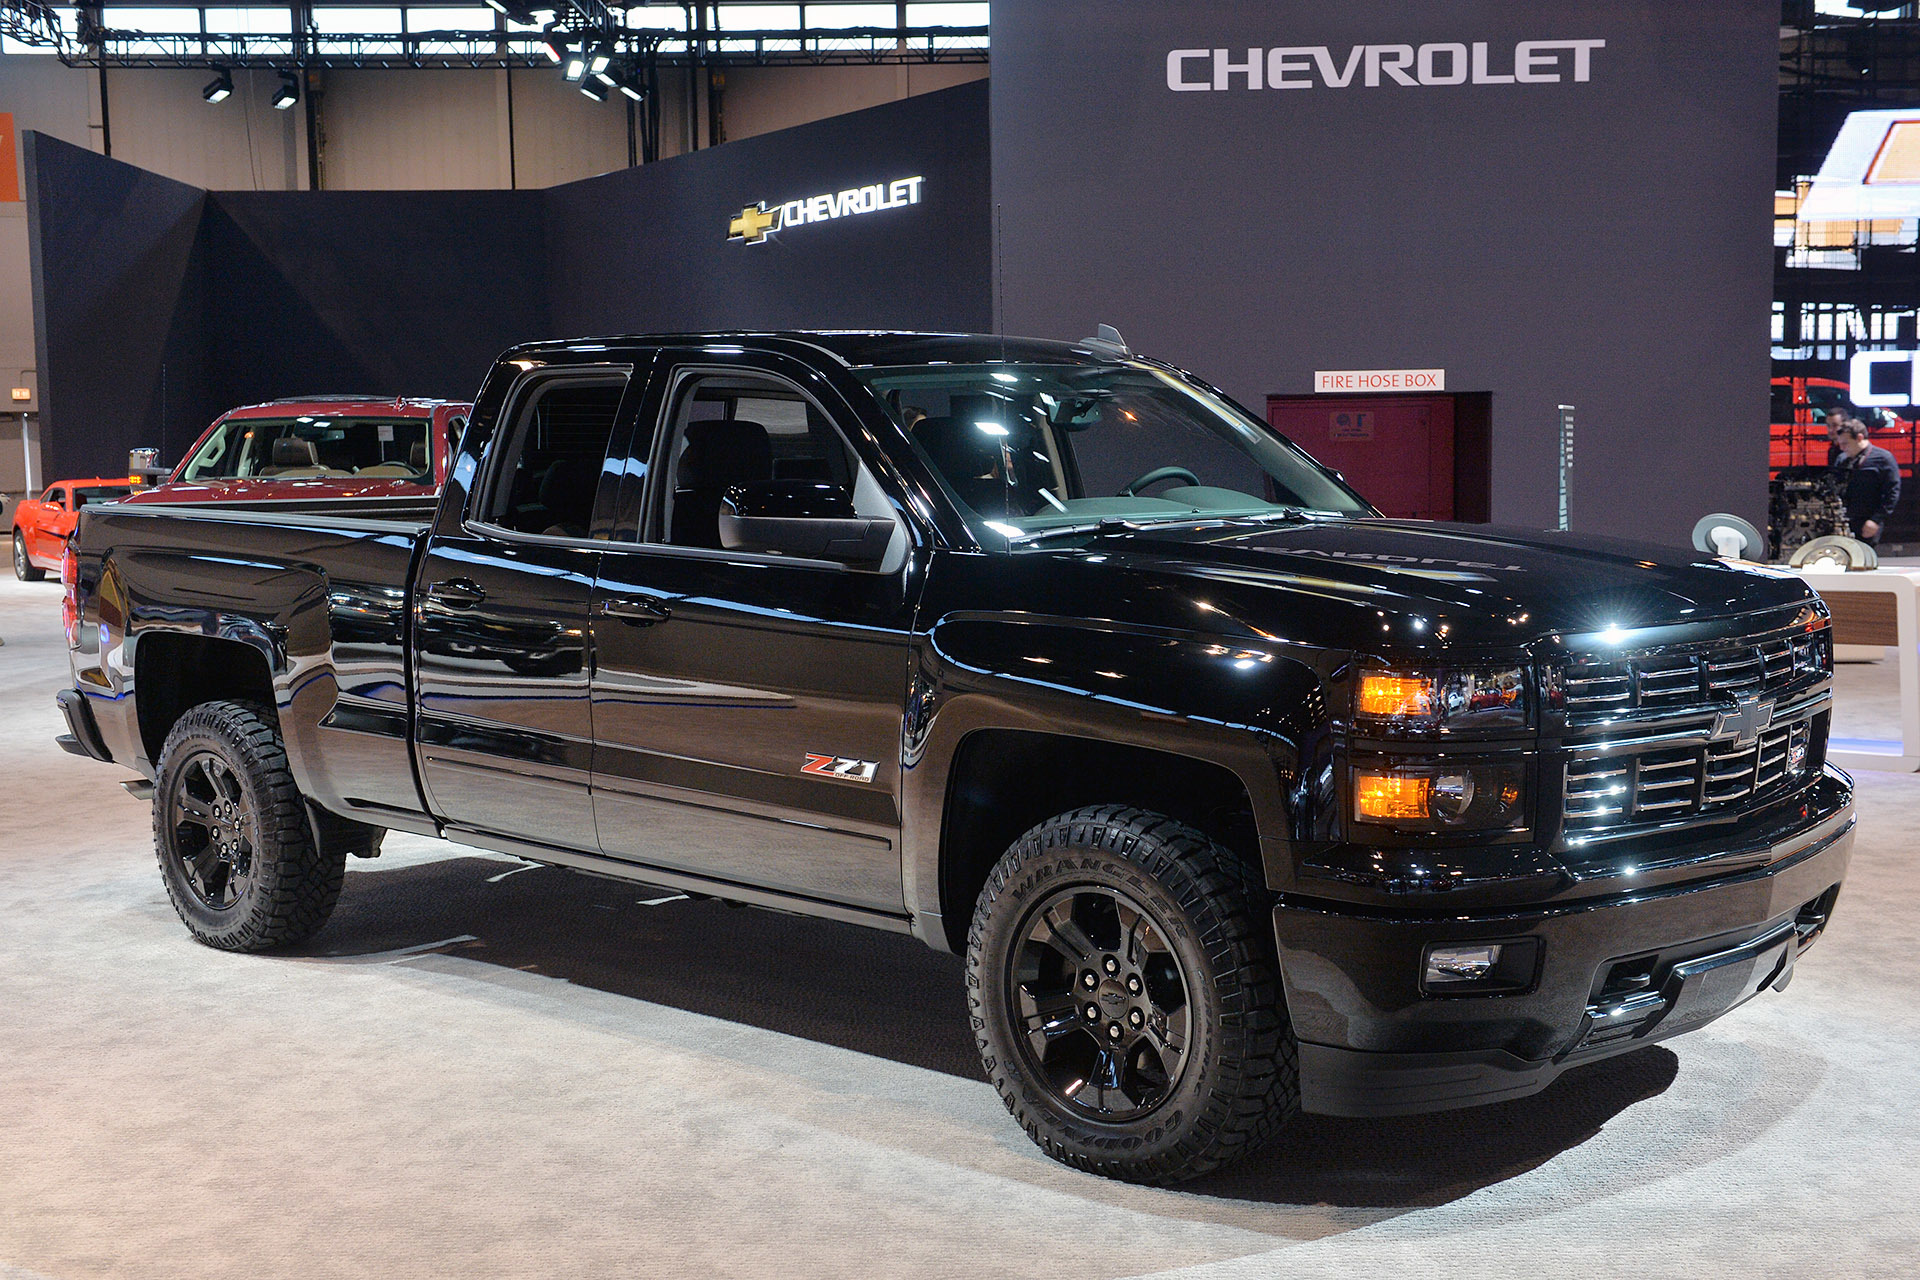 2015 Chevrolet Silverado Midnight Edition: Chicago 2015 Photo Gallery - Autoblog